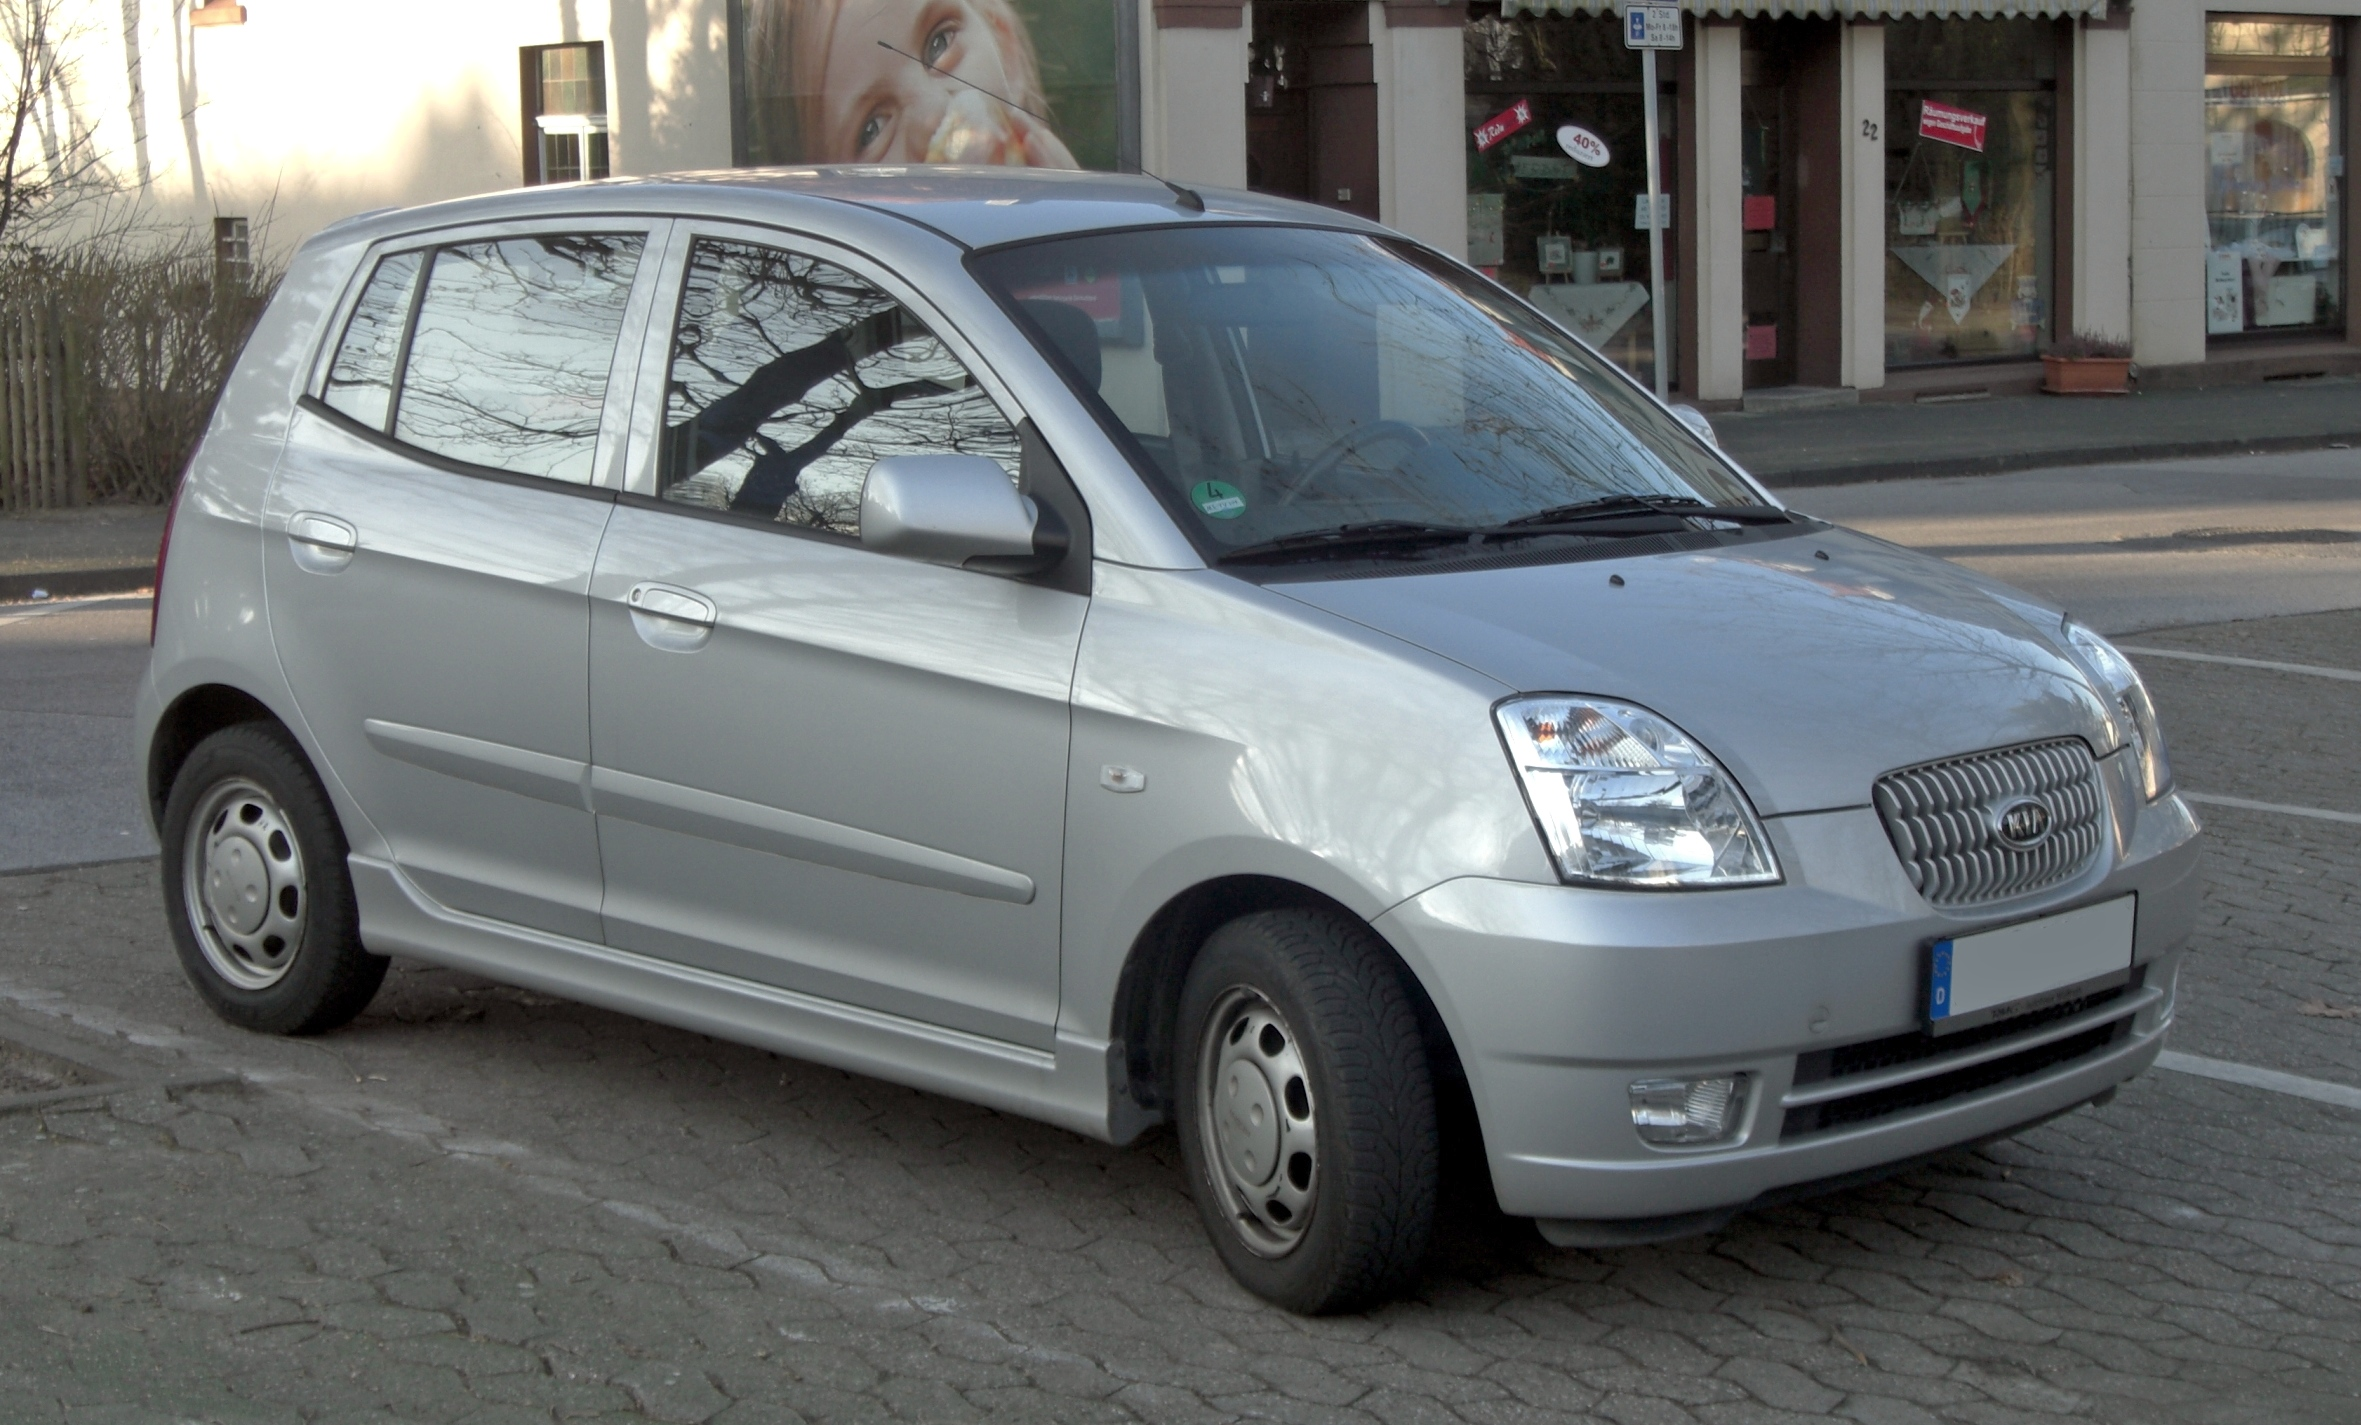 2009 kia picanto pictures information and specs auto. Black Bedroom Furniture Sets. Home Design Ideas